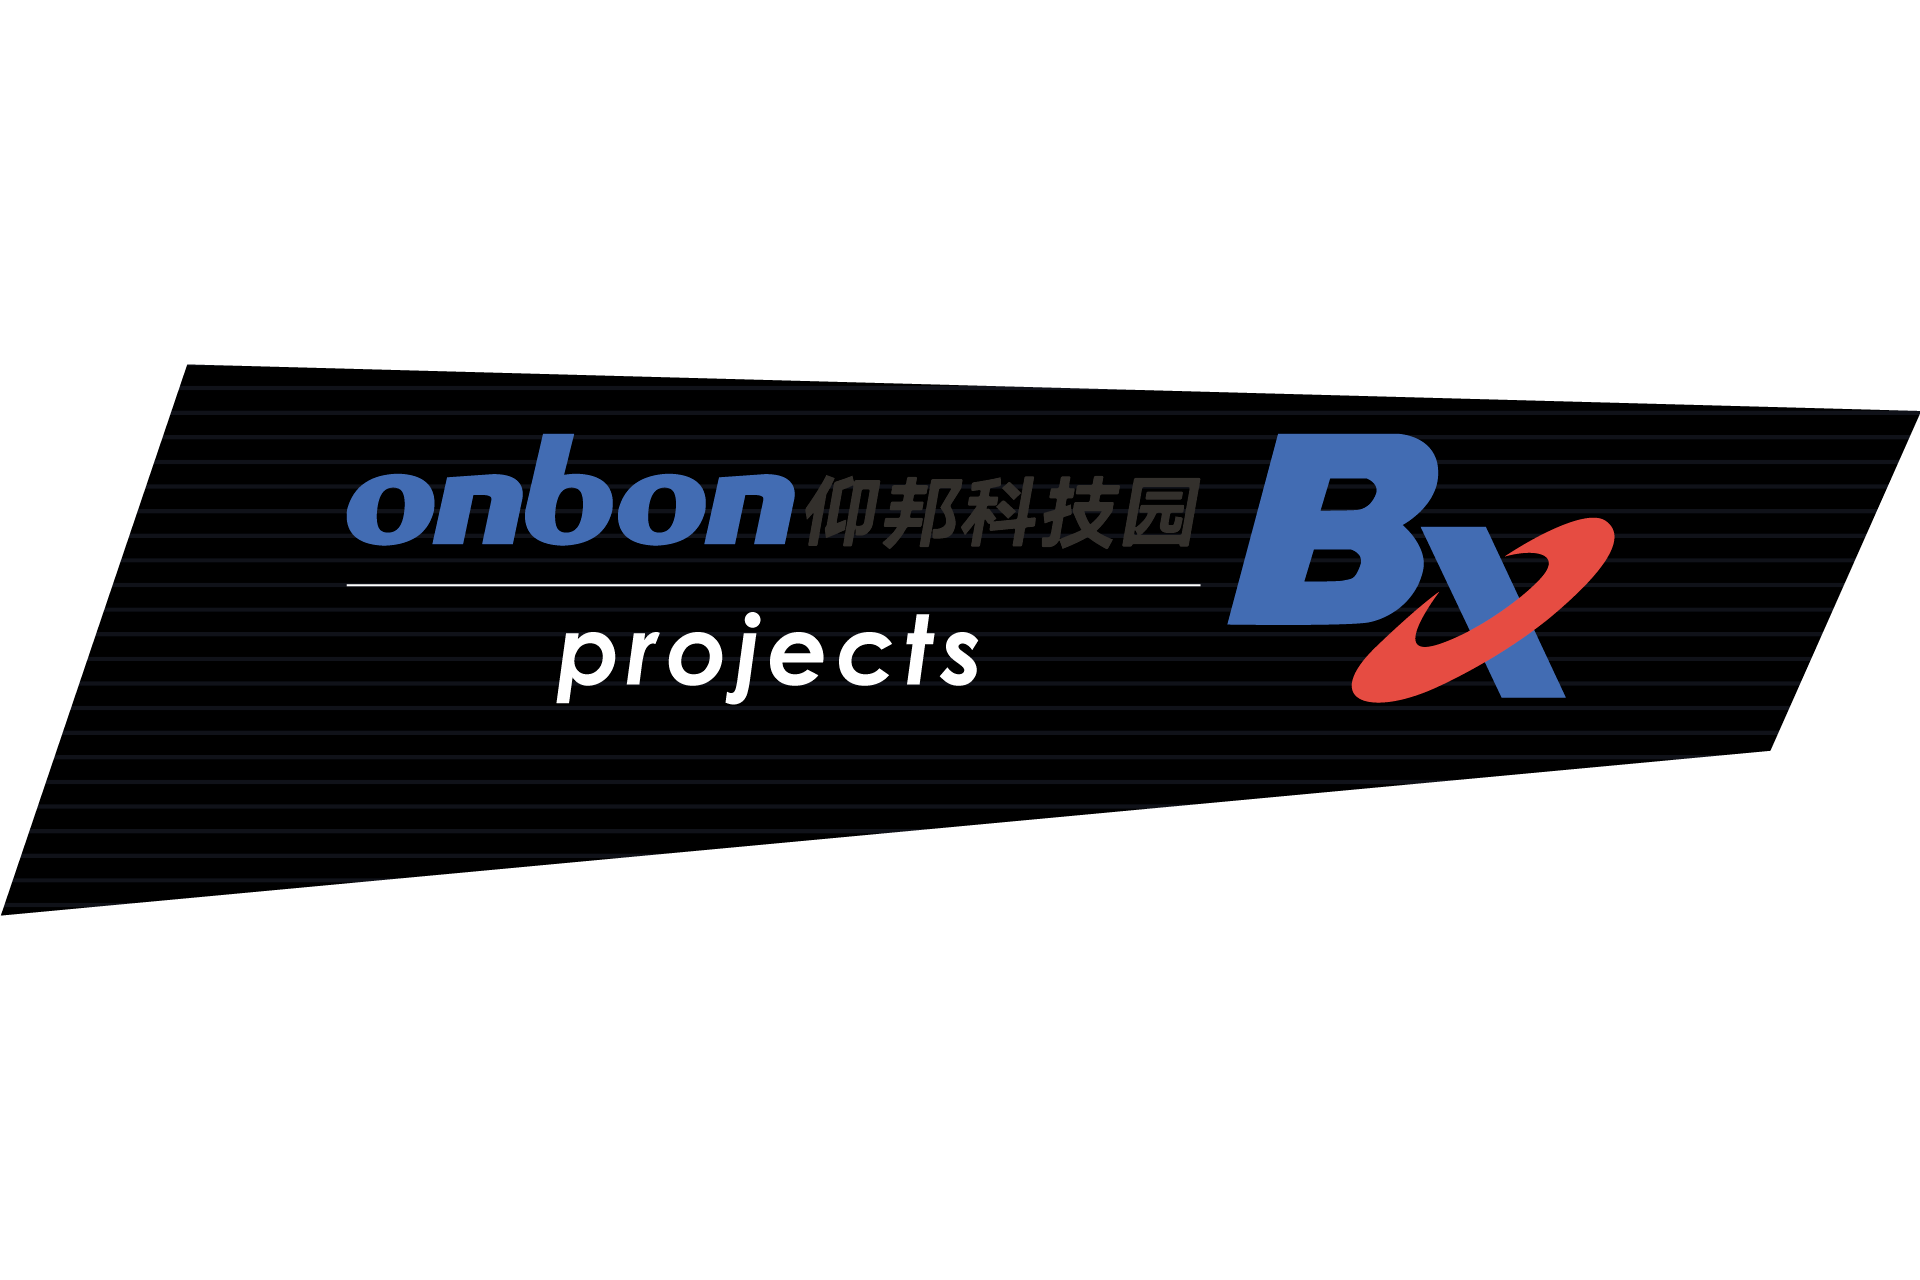 Onbon projects